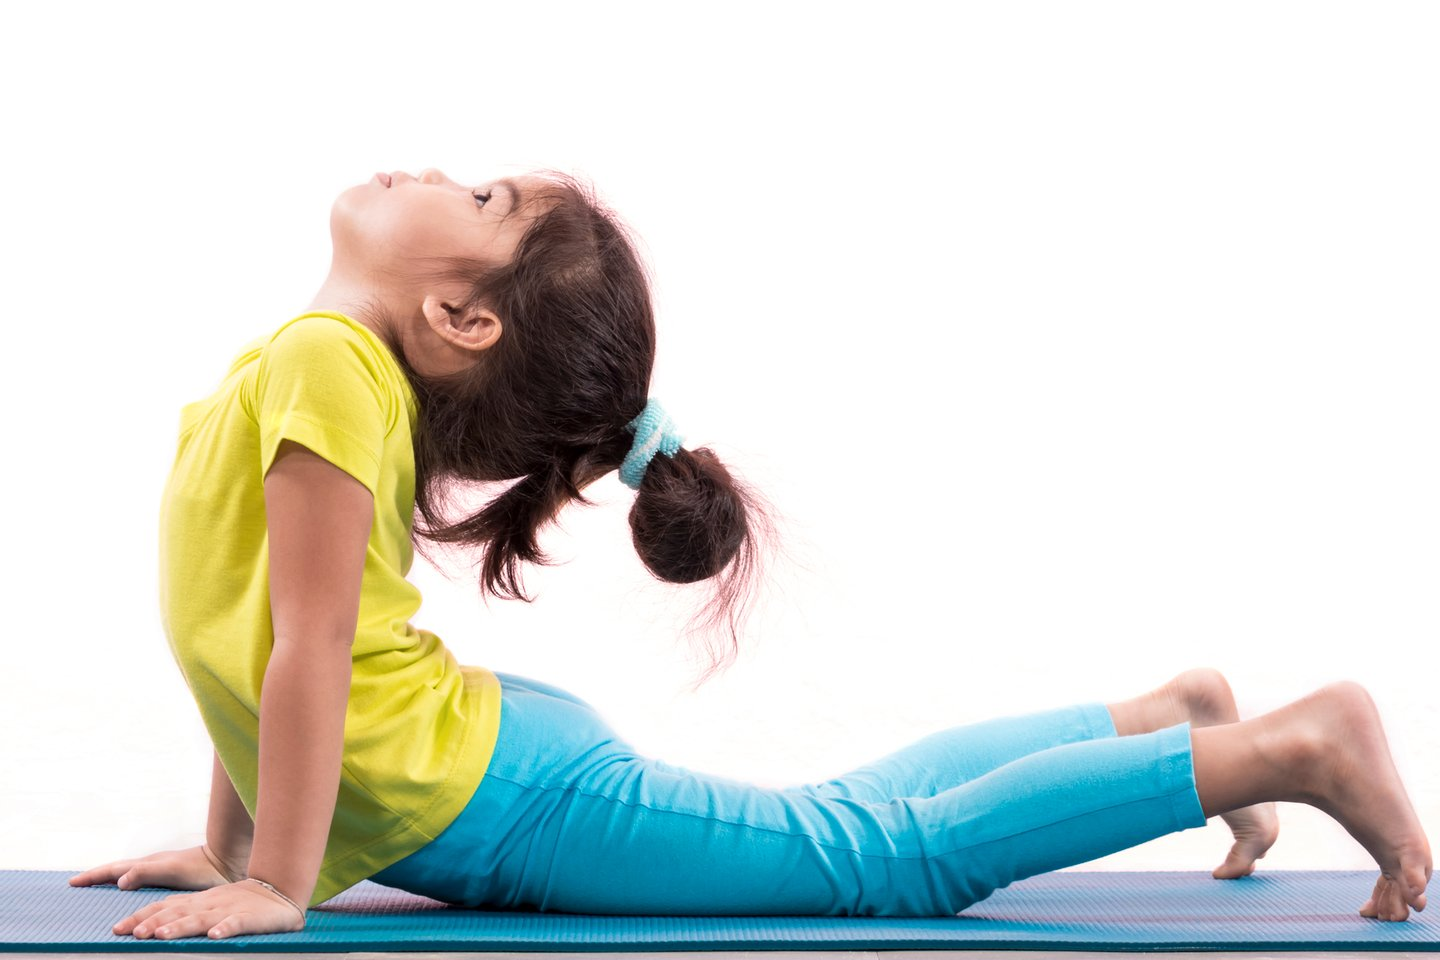 Little Girls, Sports Training, Zen-like, Relaxation Exercise, Cute, Child, Smiling, Meditating, Stretching, Fun, Healthy Lifestyle, Caucasian, One Person, Flexibility, Strength, Skill, Contemplation, Concentration, Relaxation, Small, Sport, Healthcare And Medicine, Lifestyles, Childhood, Studio Shot, Cheerful, Gymnastics, Yoga, Activity, The Human Body, Offspring, People, Floor,